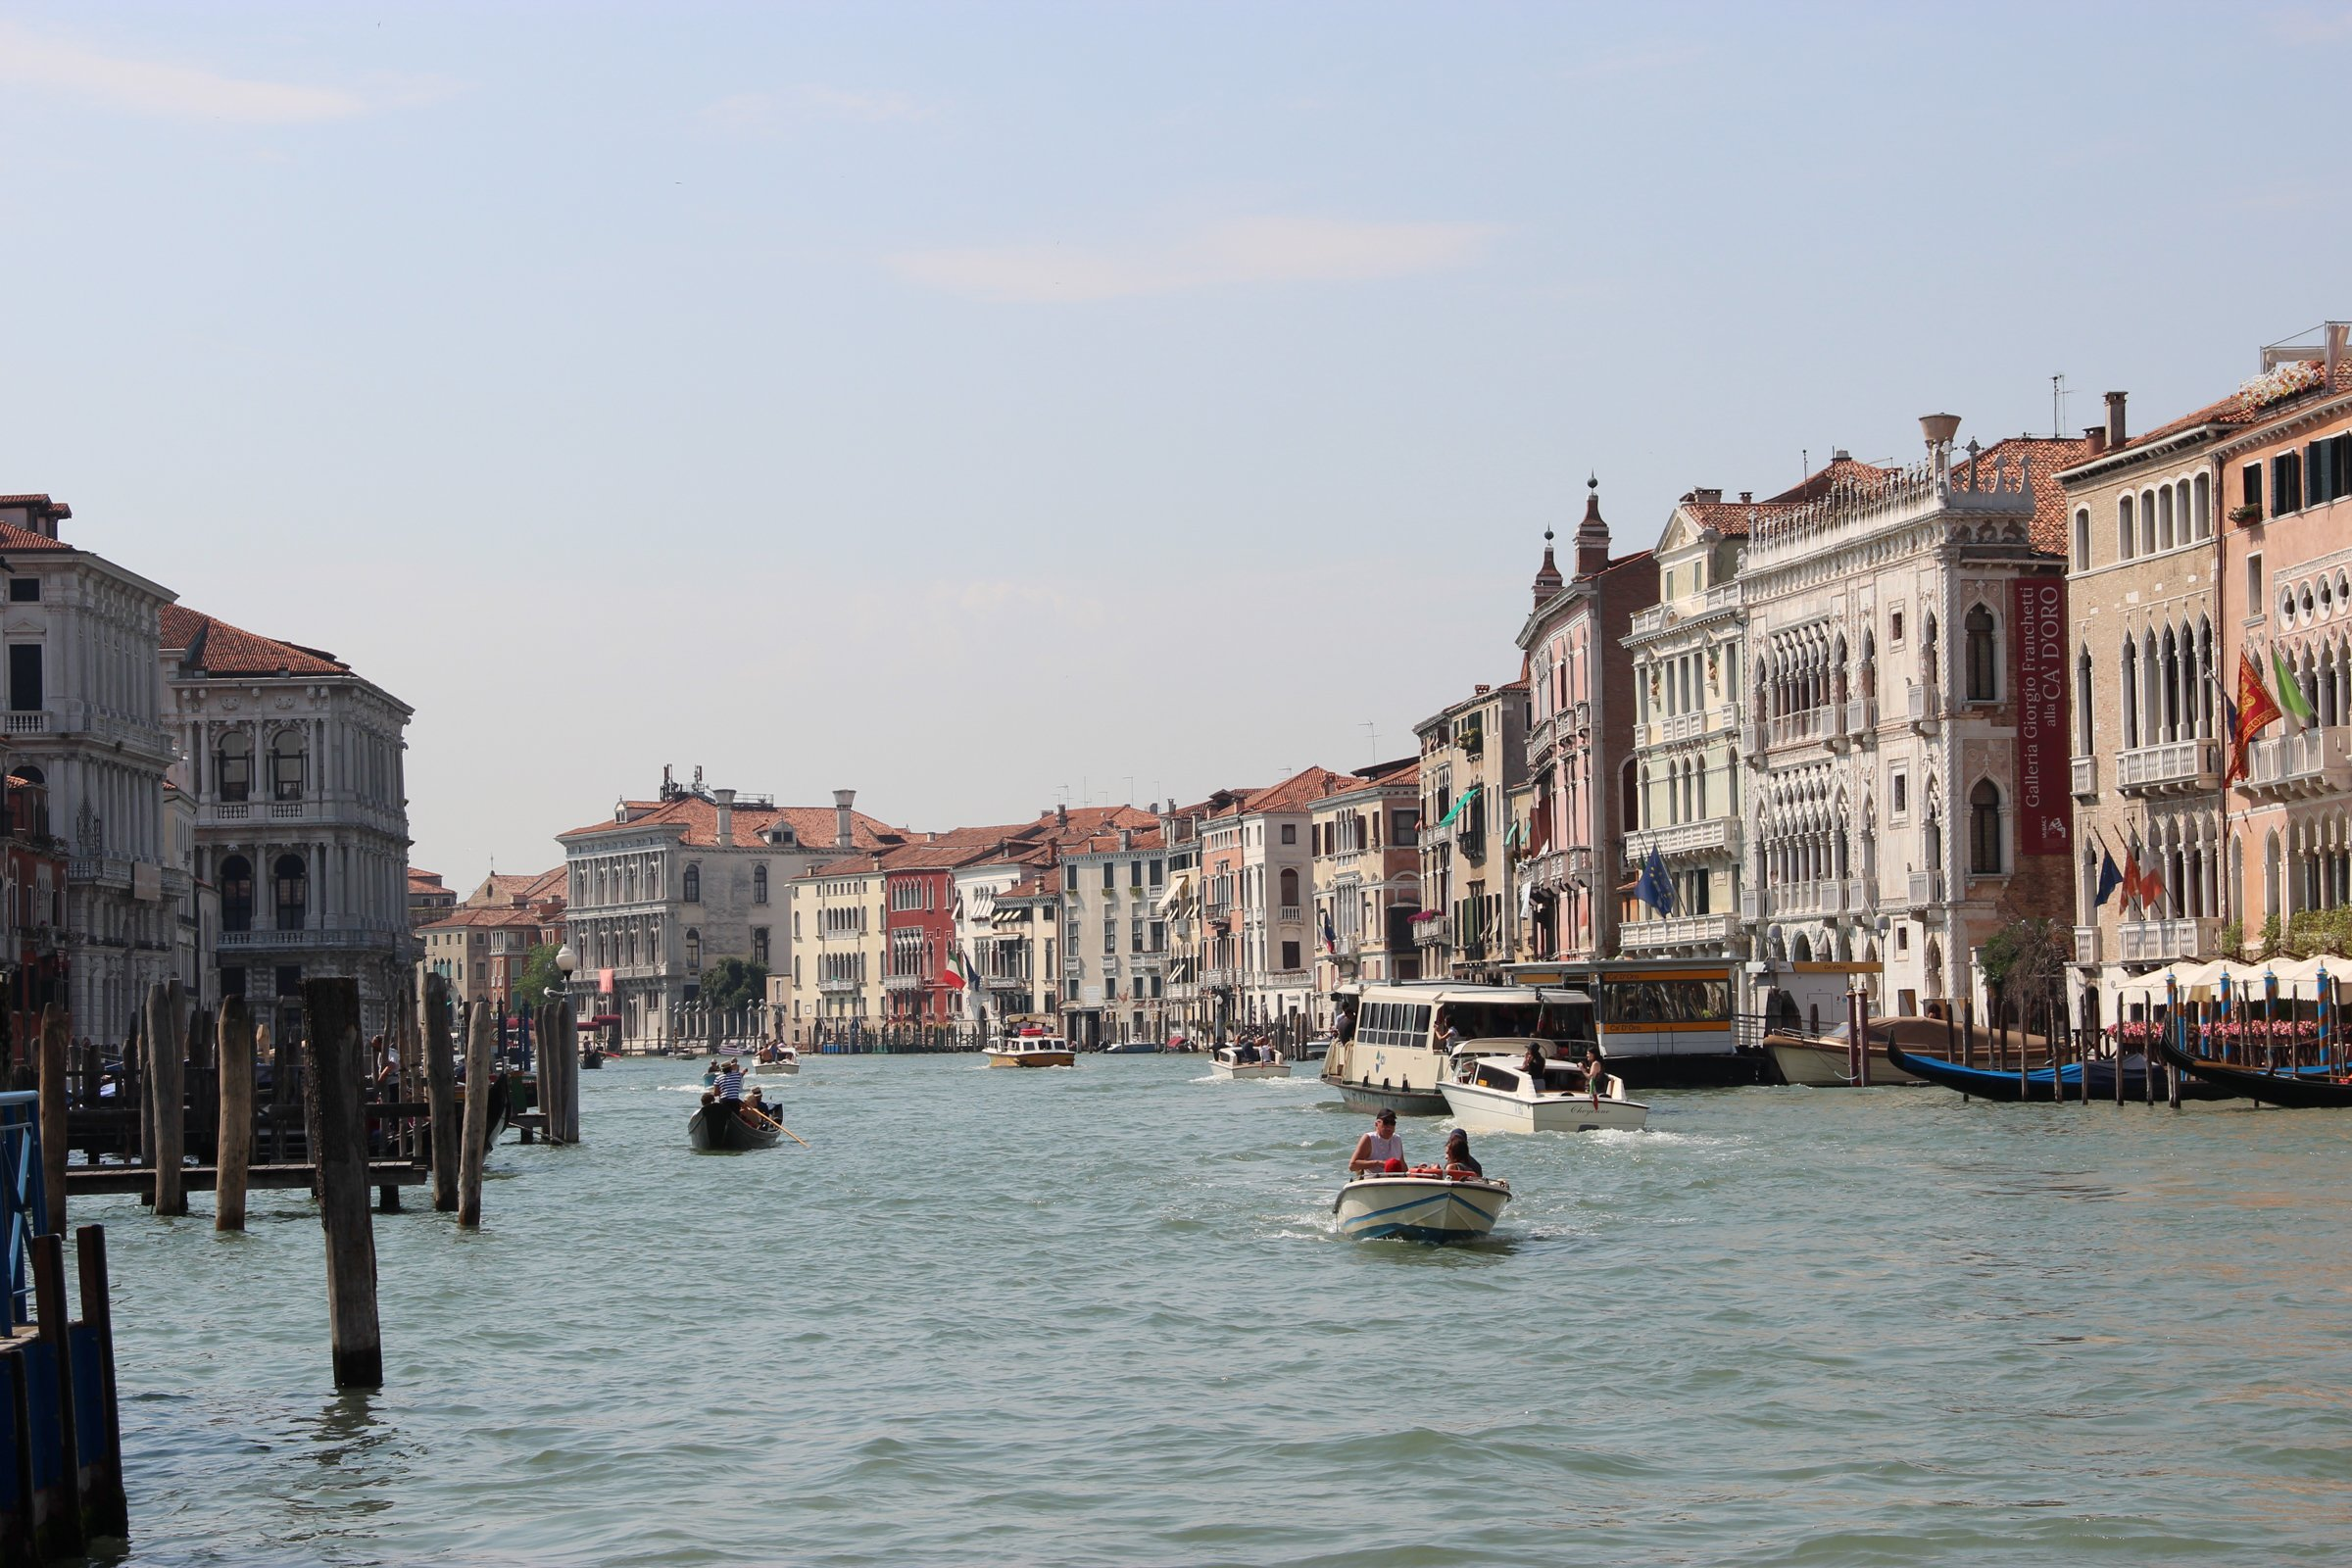 Boats on Venice Canals with Buildings